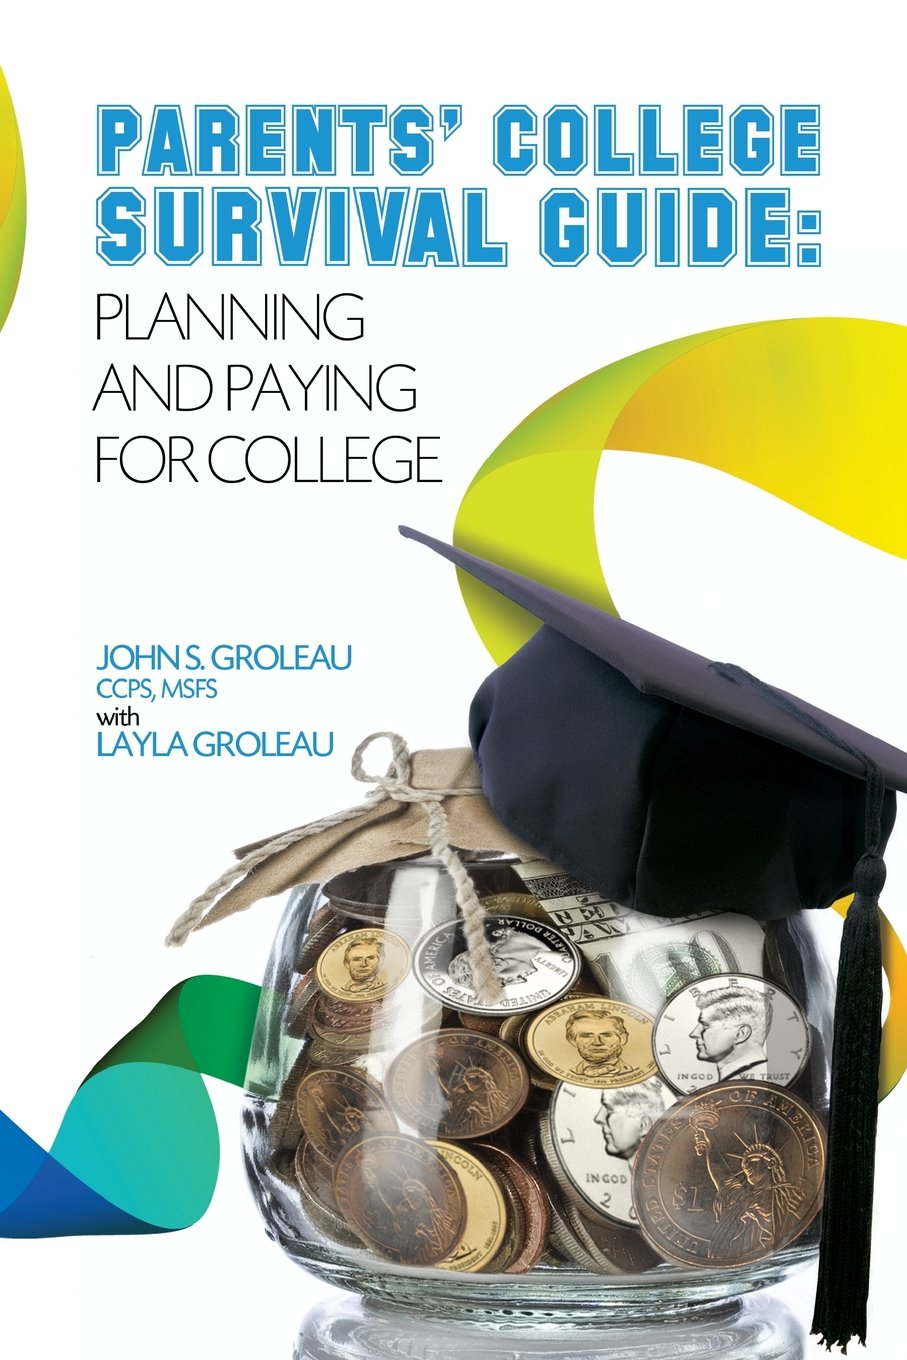 parents college survival guide planning and paying for college parents college survival guide planning and paying for college mr john s groleau groleau msfs 9780983605508 com books